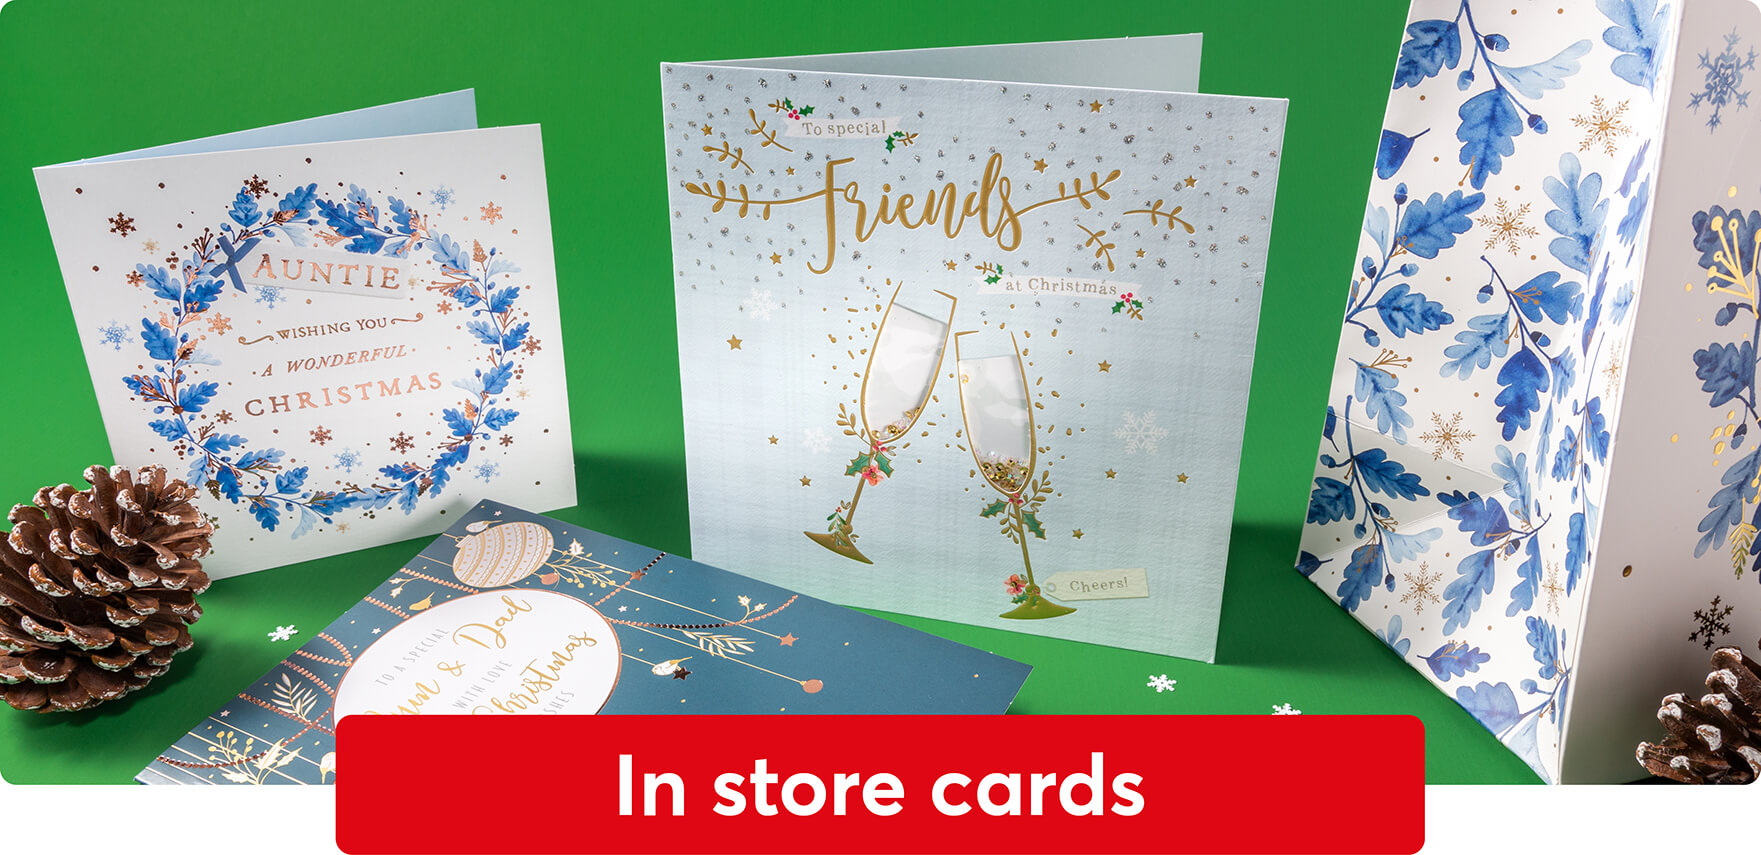 in store cards